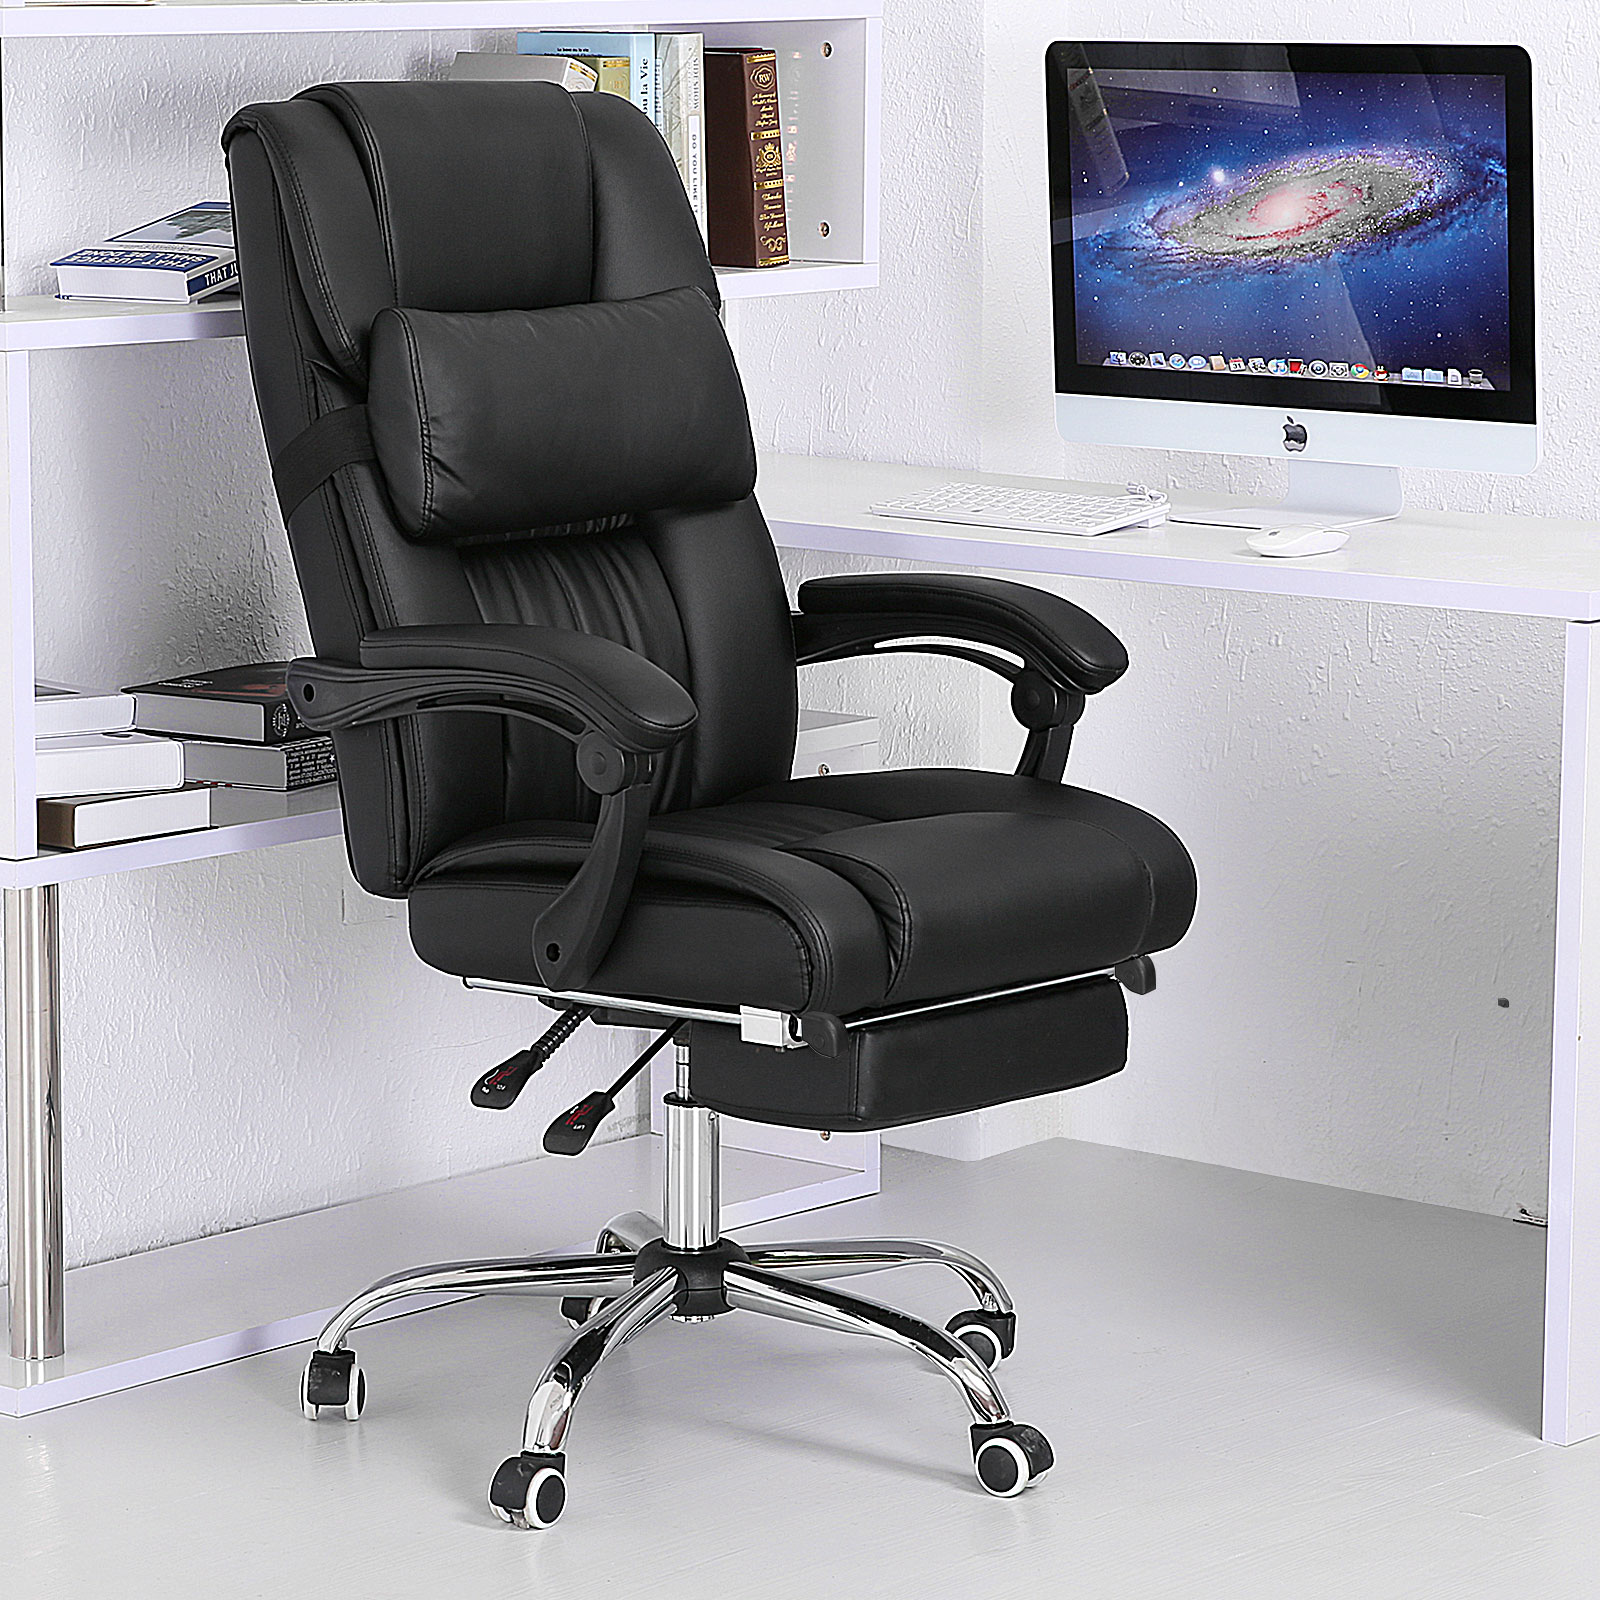 Comfortable Computer Chairs Executive Office Chair Ergonomic High Back Reclining